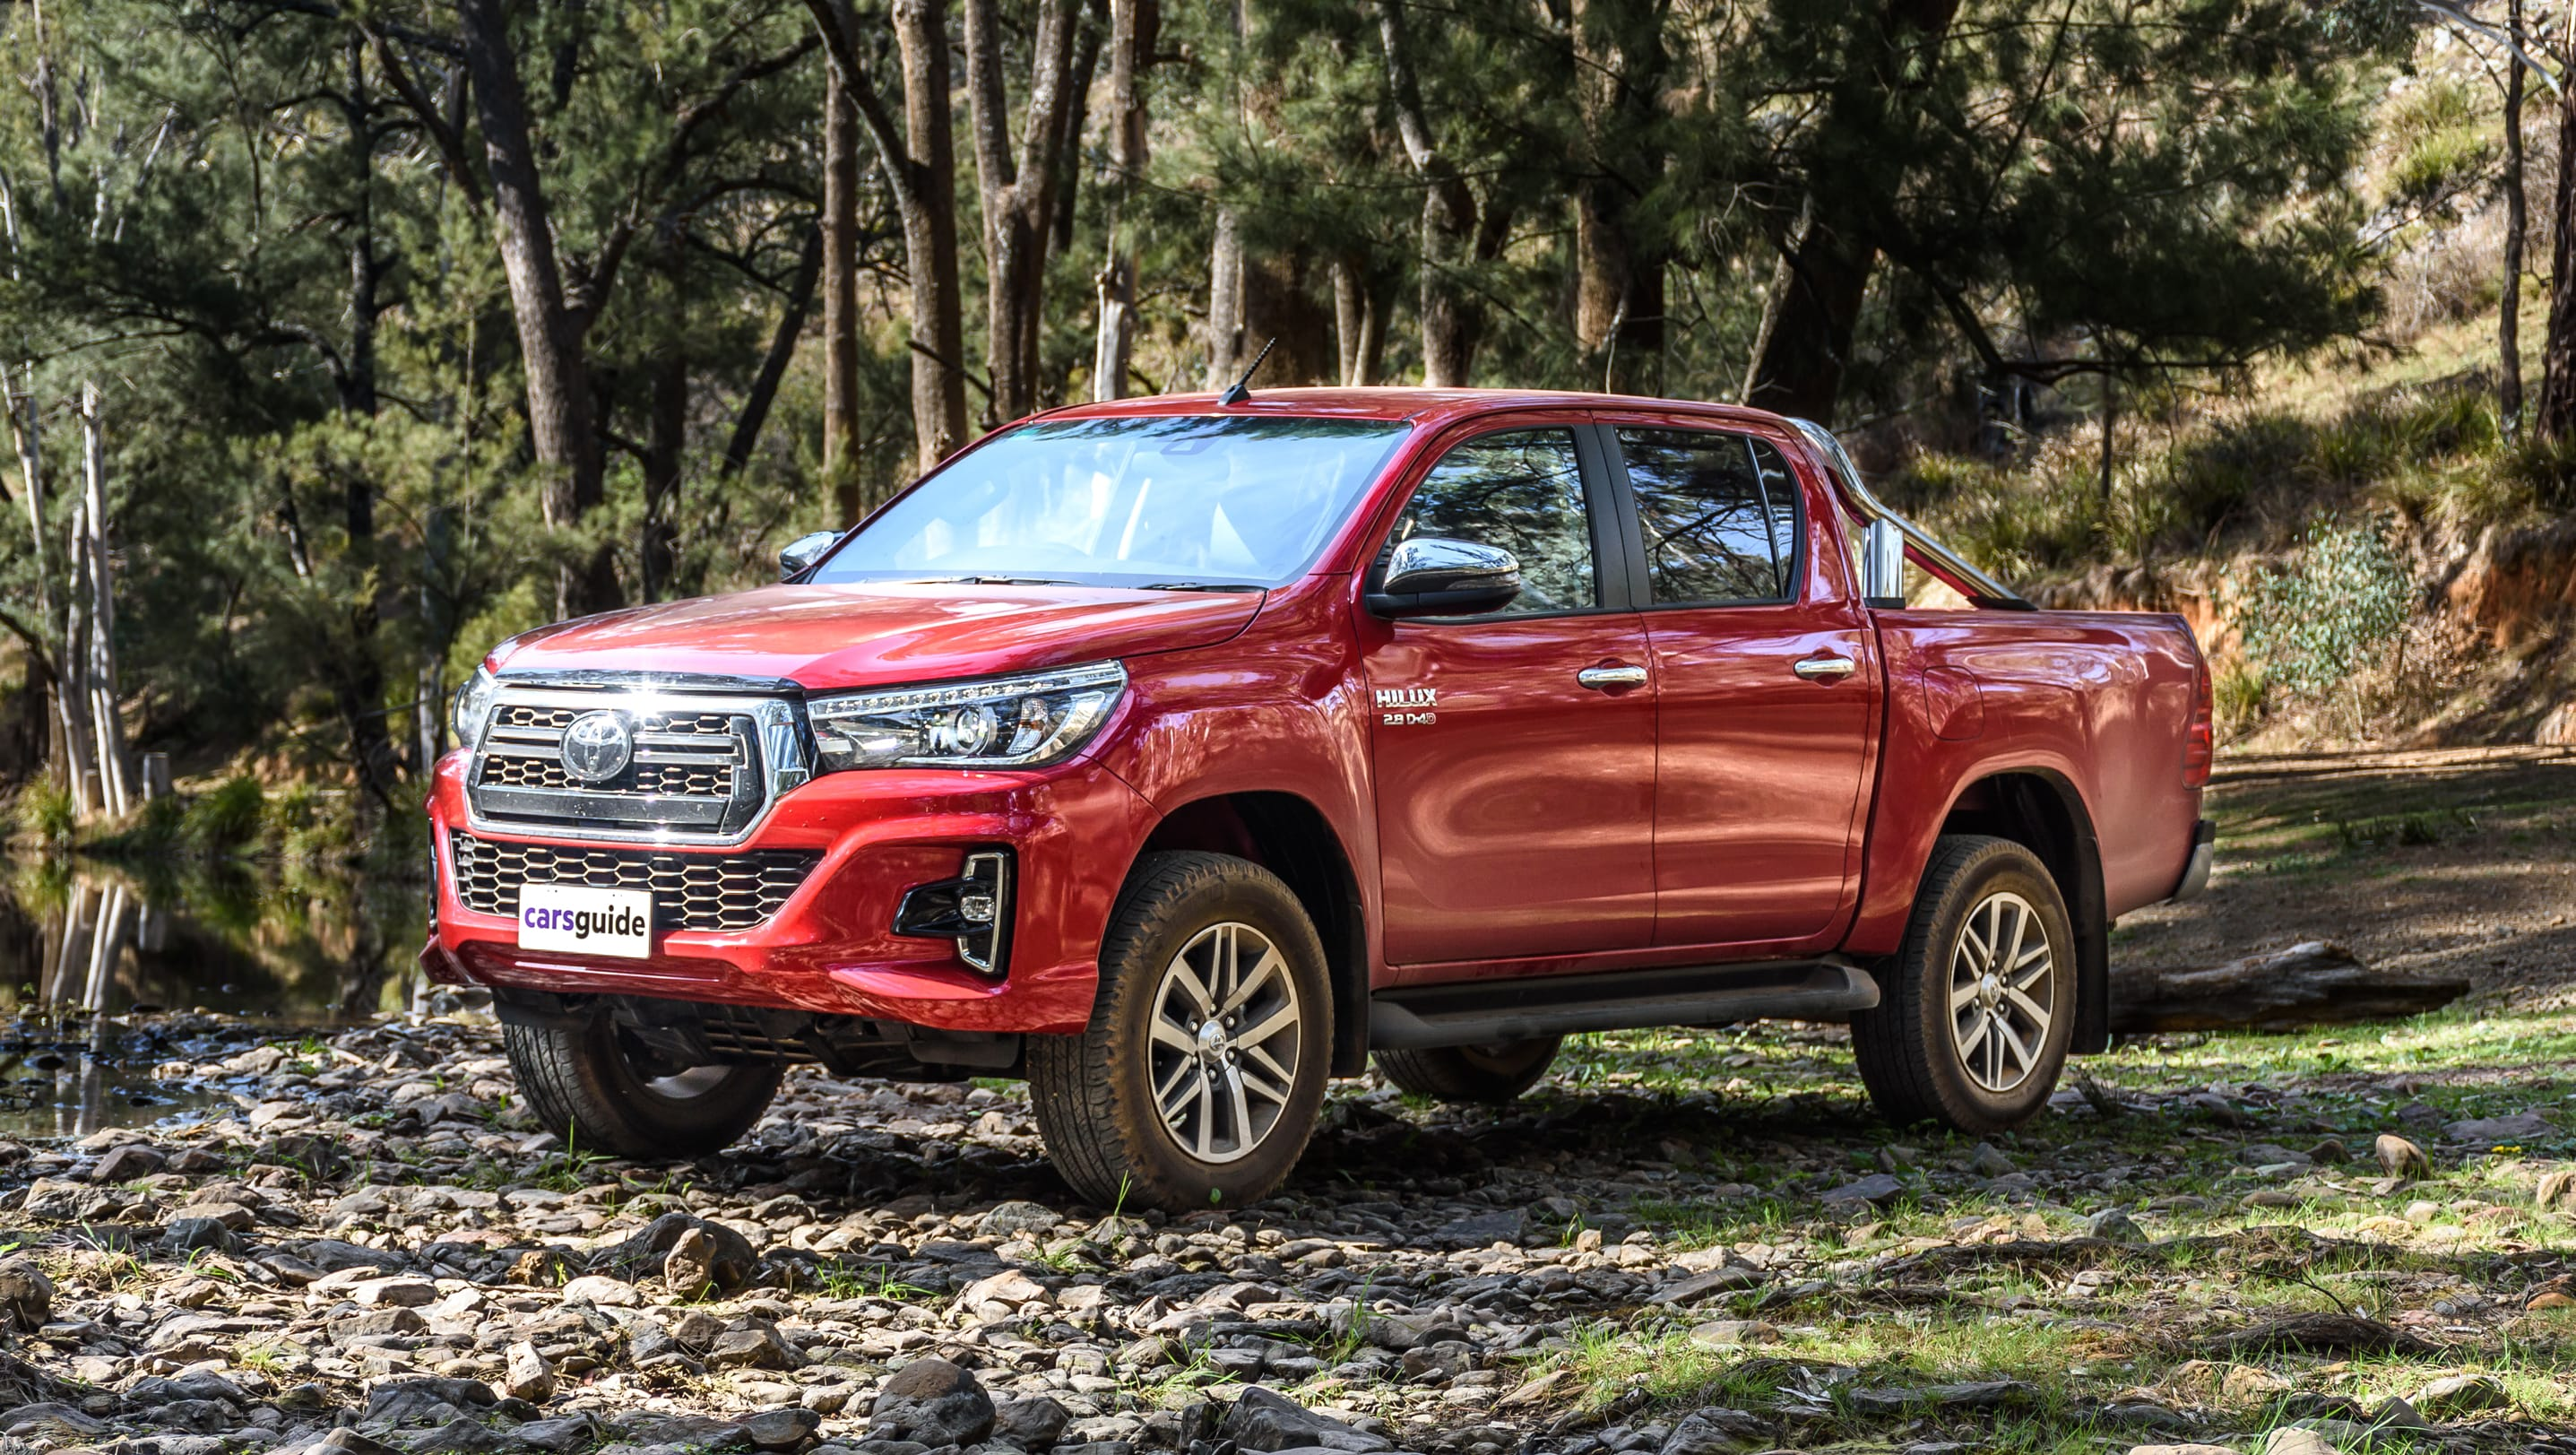 Toyota Hilux 2020 Review Sr5 Carsguide